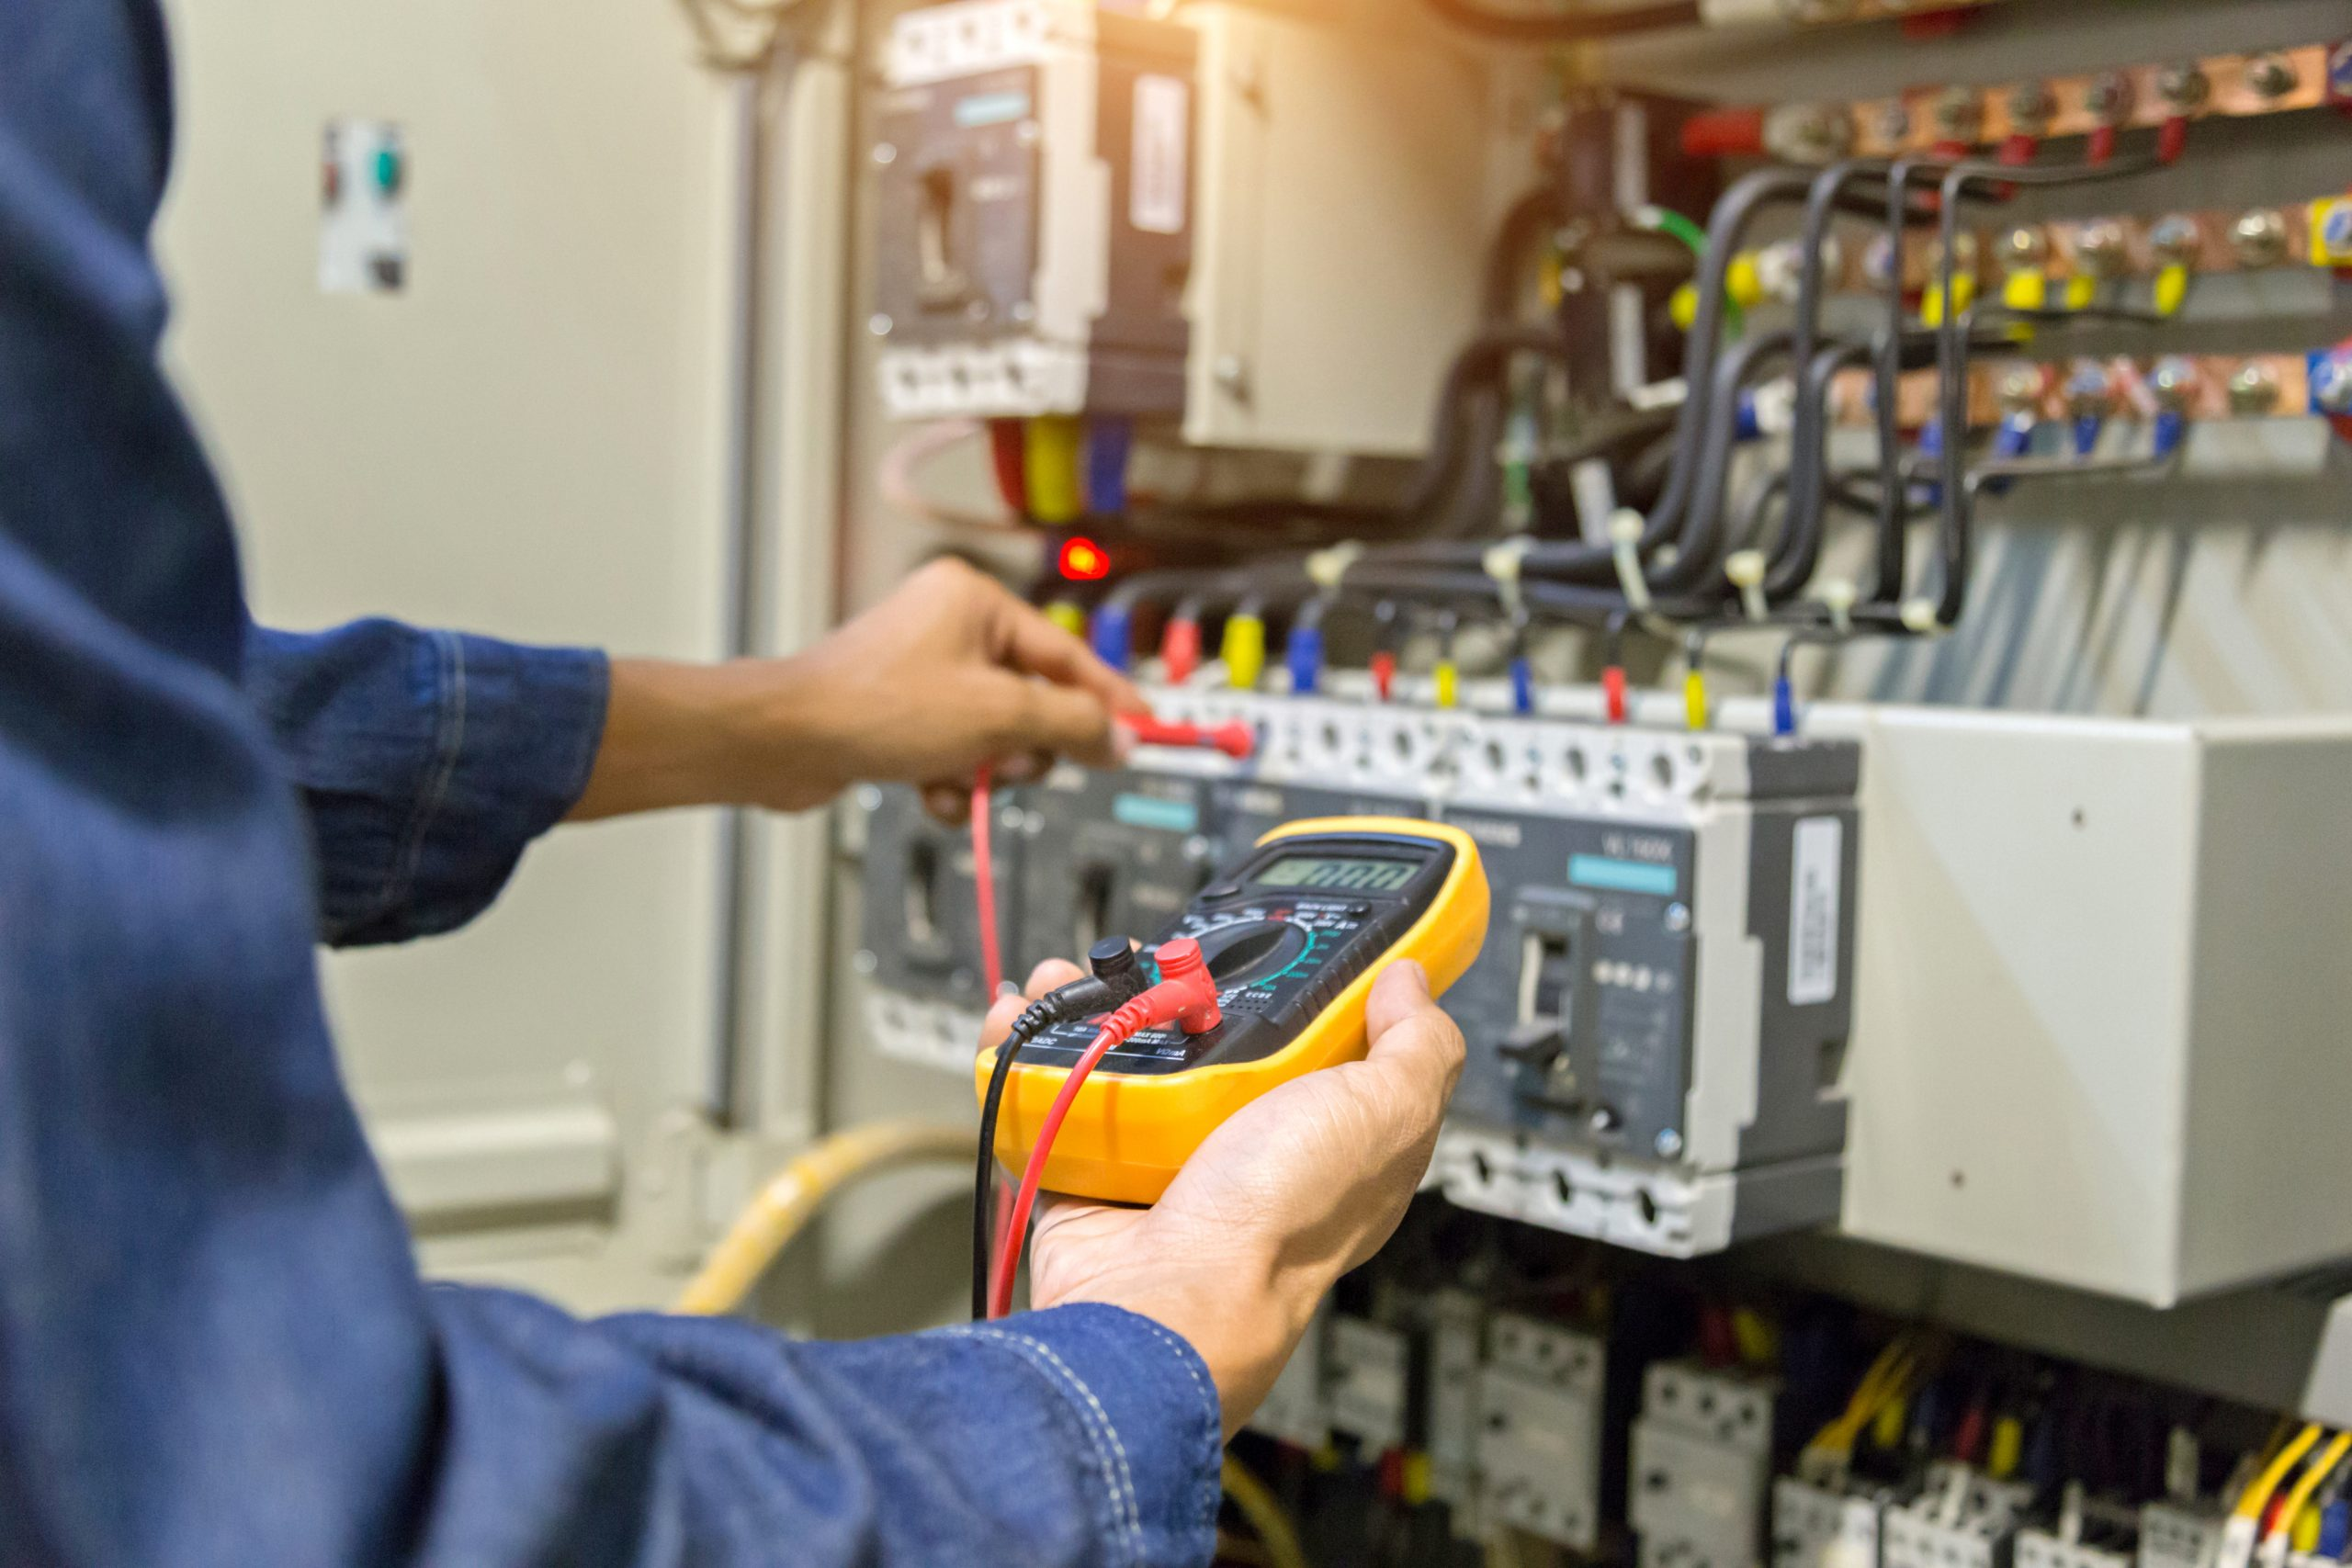 Operation, Monitoring and Control of Electric Machines & Industrial Processes